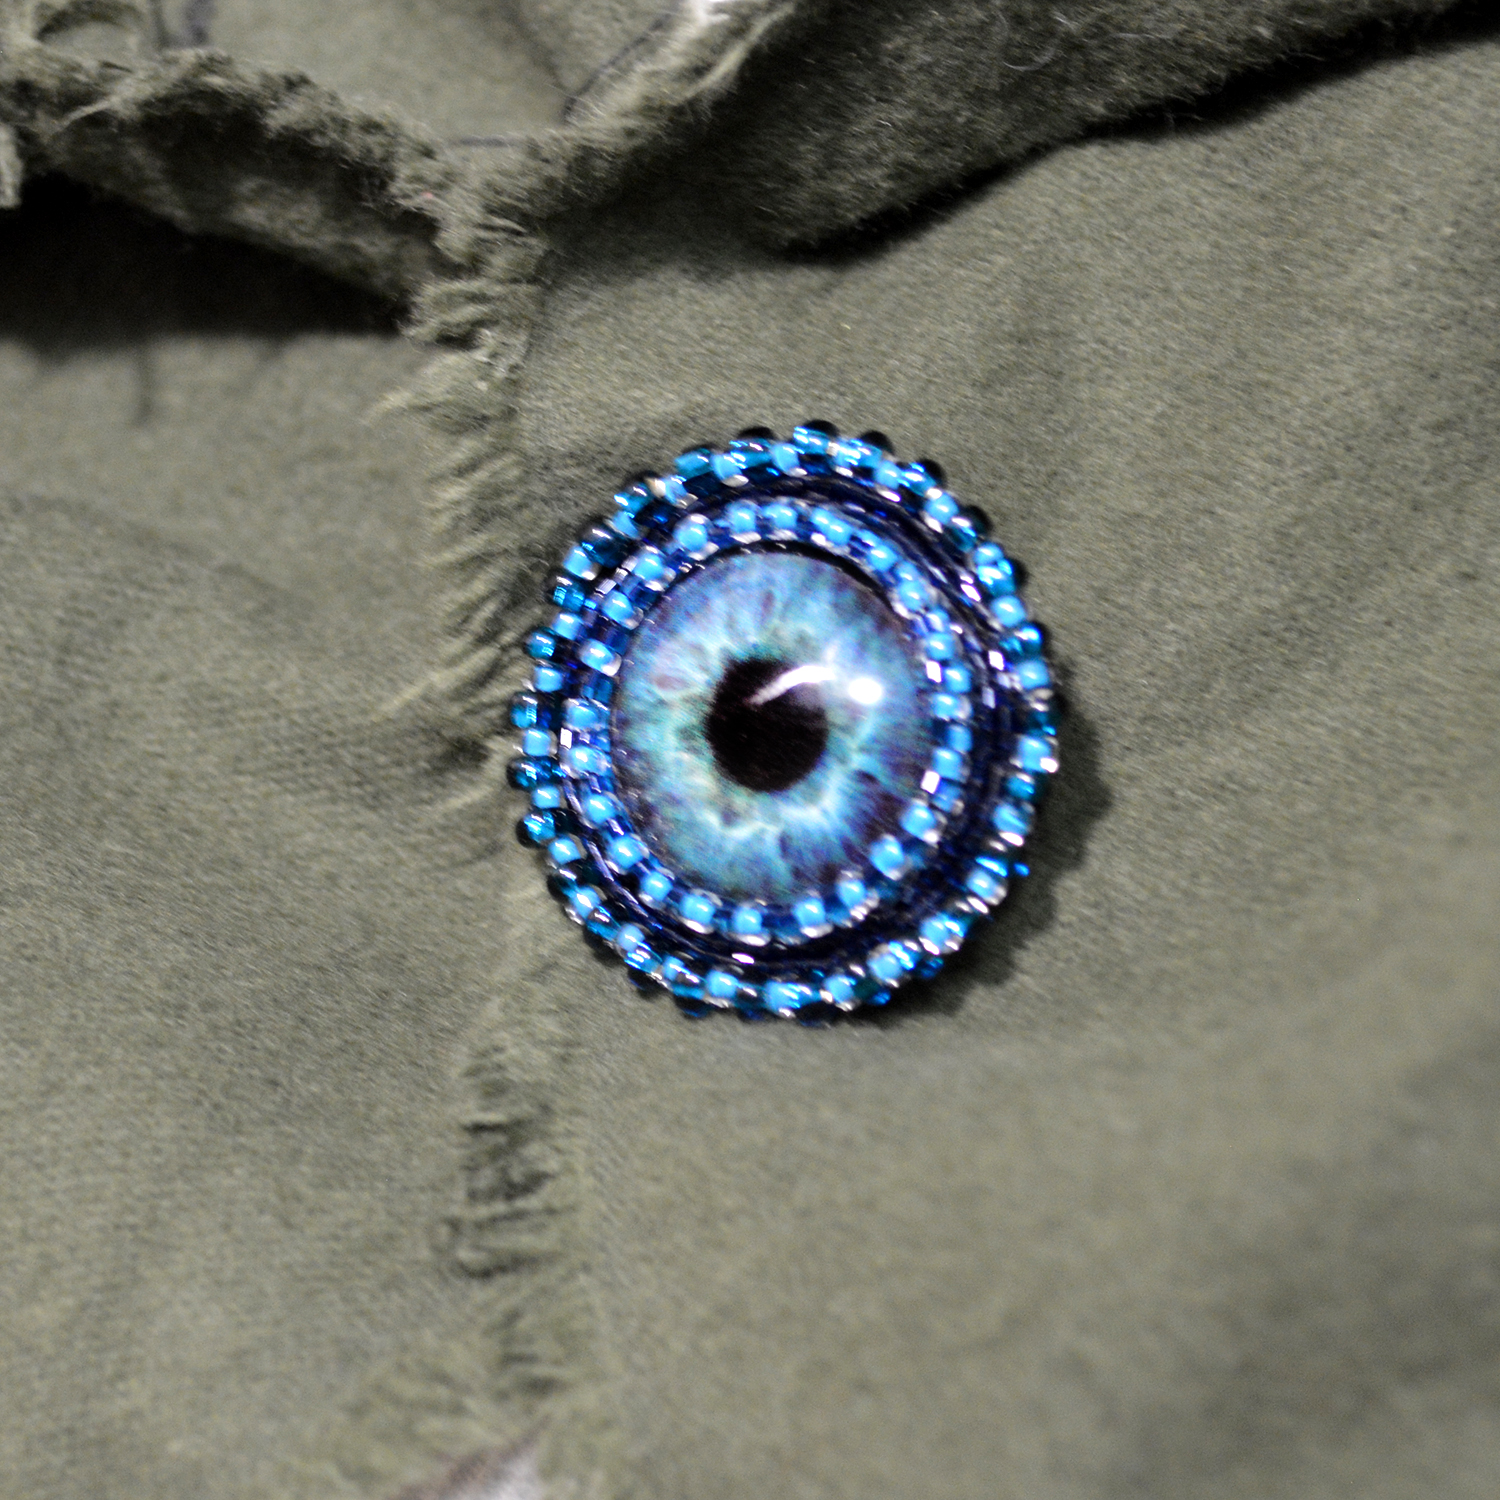 eye shiner ware small mystery weener brooch product pin